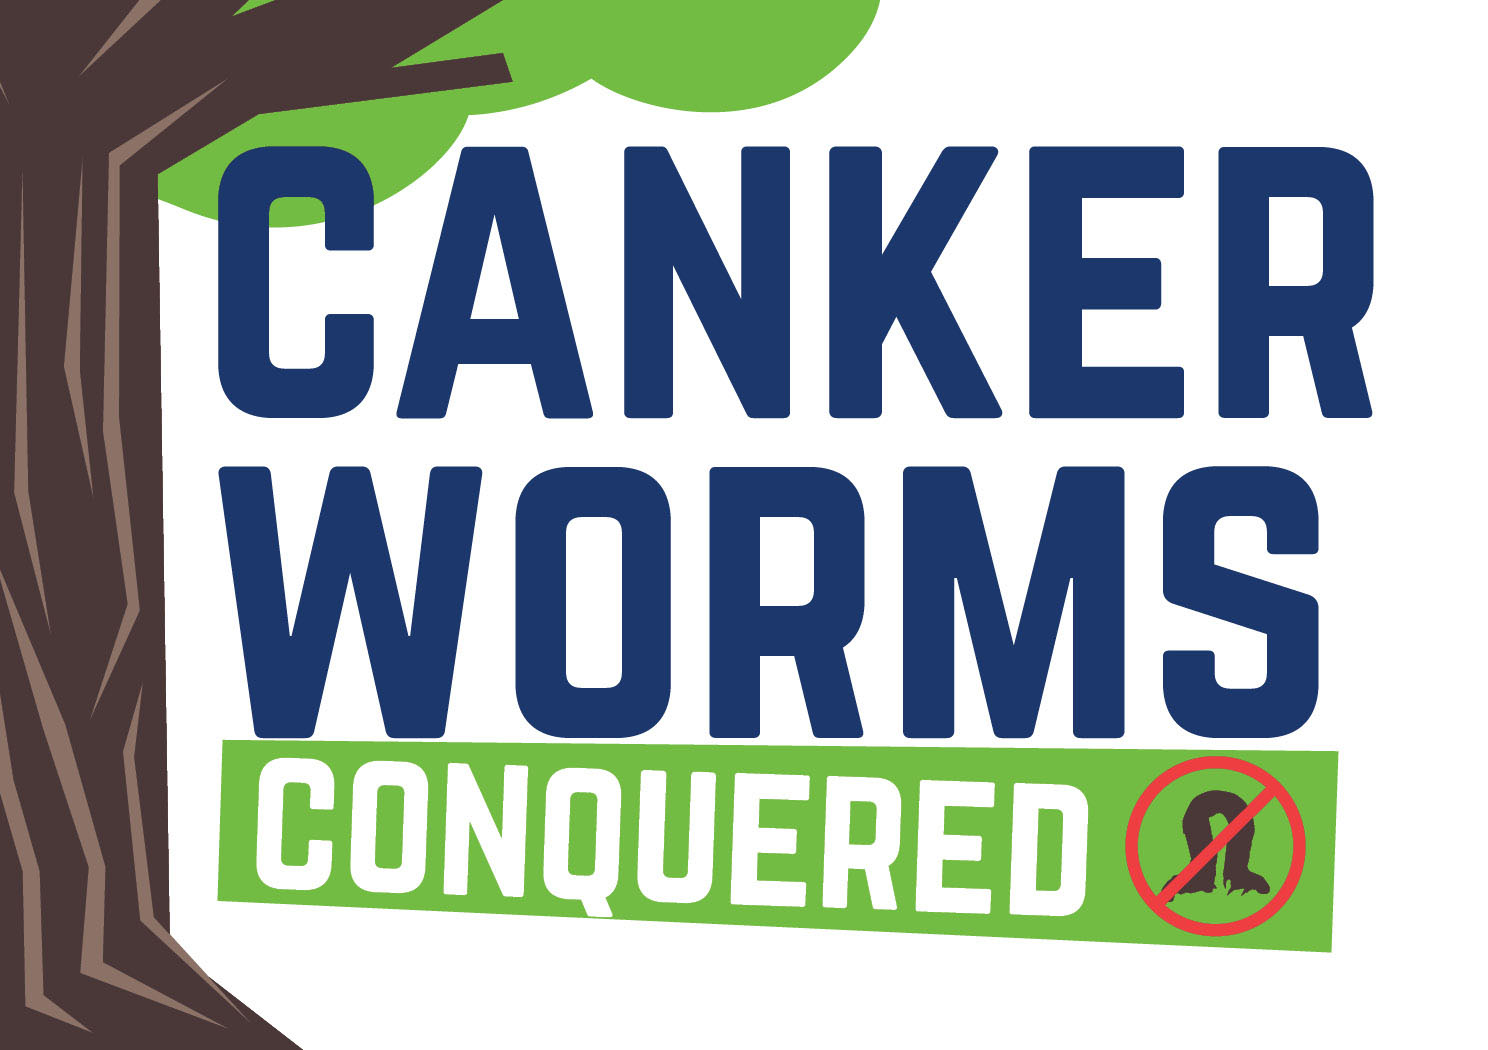 CAnkerworms conquered